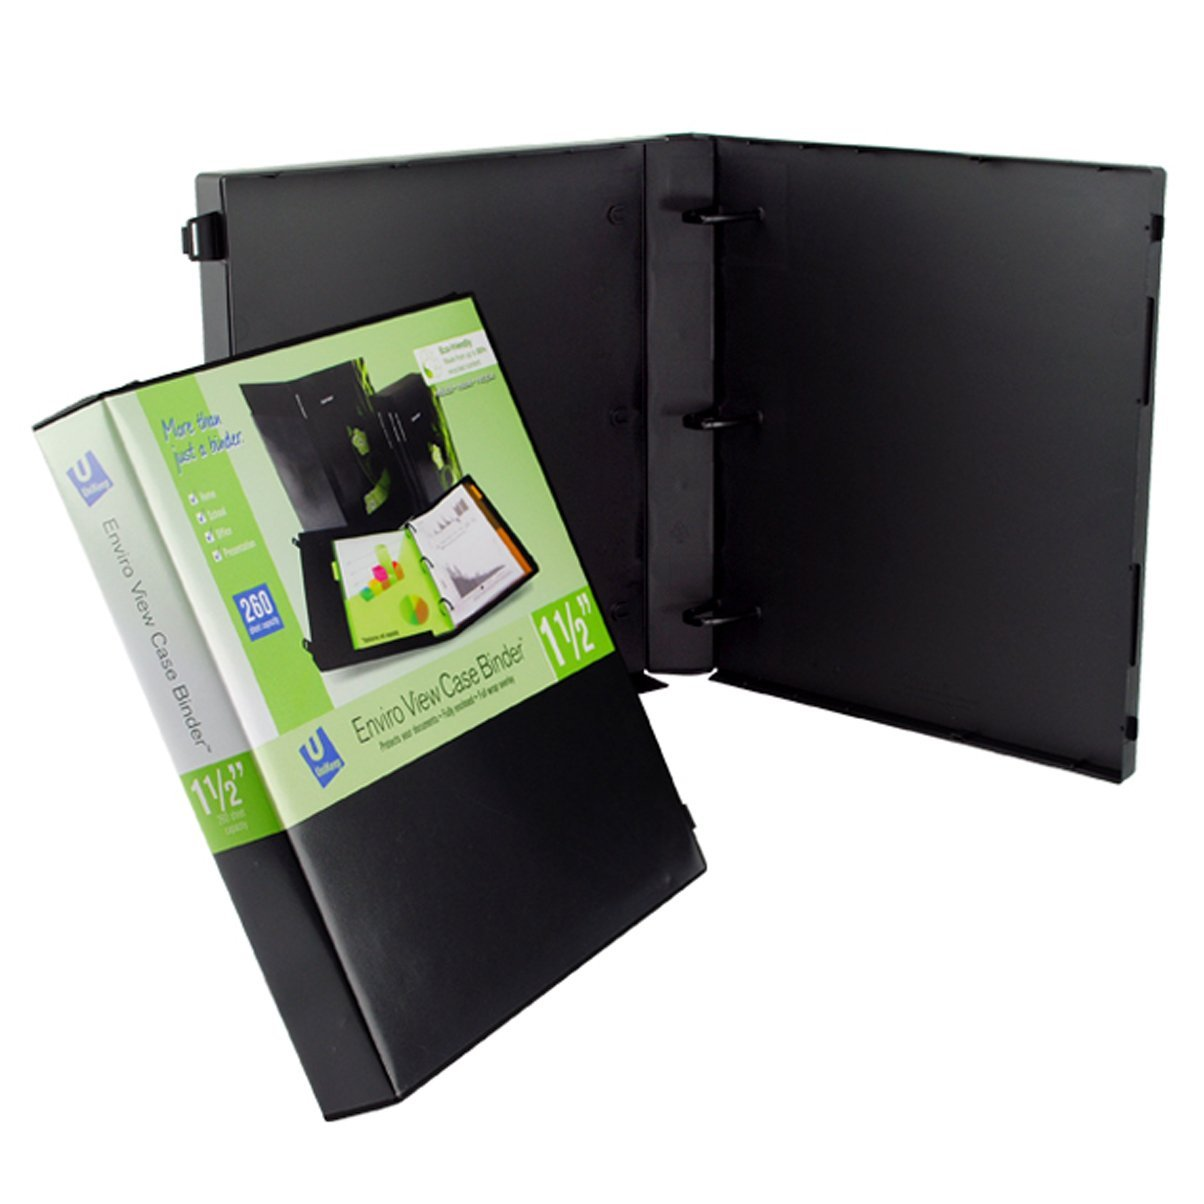 UniKeep 3 Ring Binder Black Case View Binder 1.5 Inch Spine With Clear Outer Overlay Box of 15 Binders by Unikeep